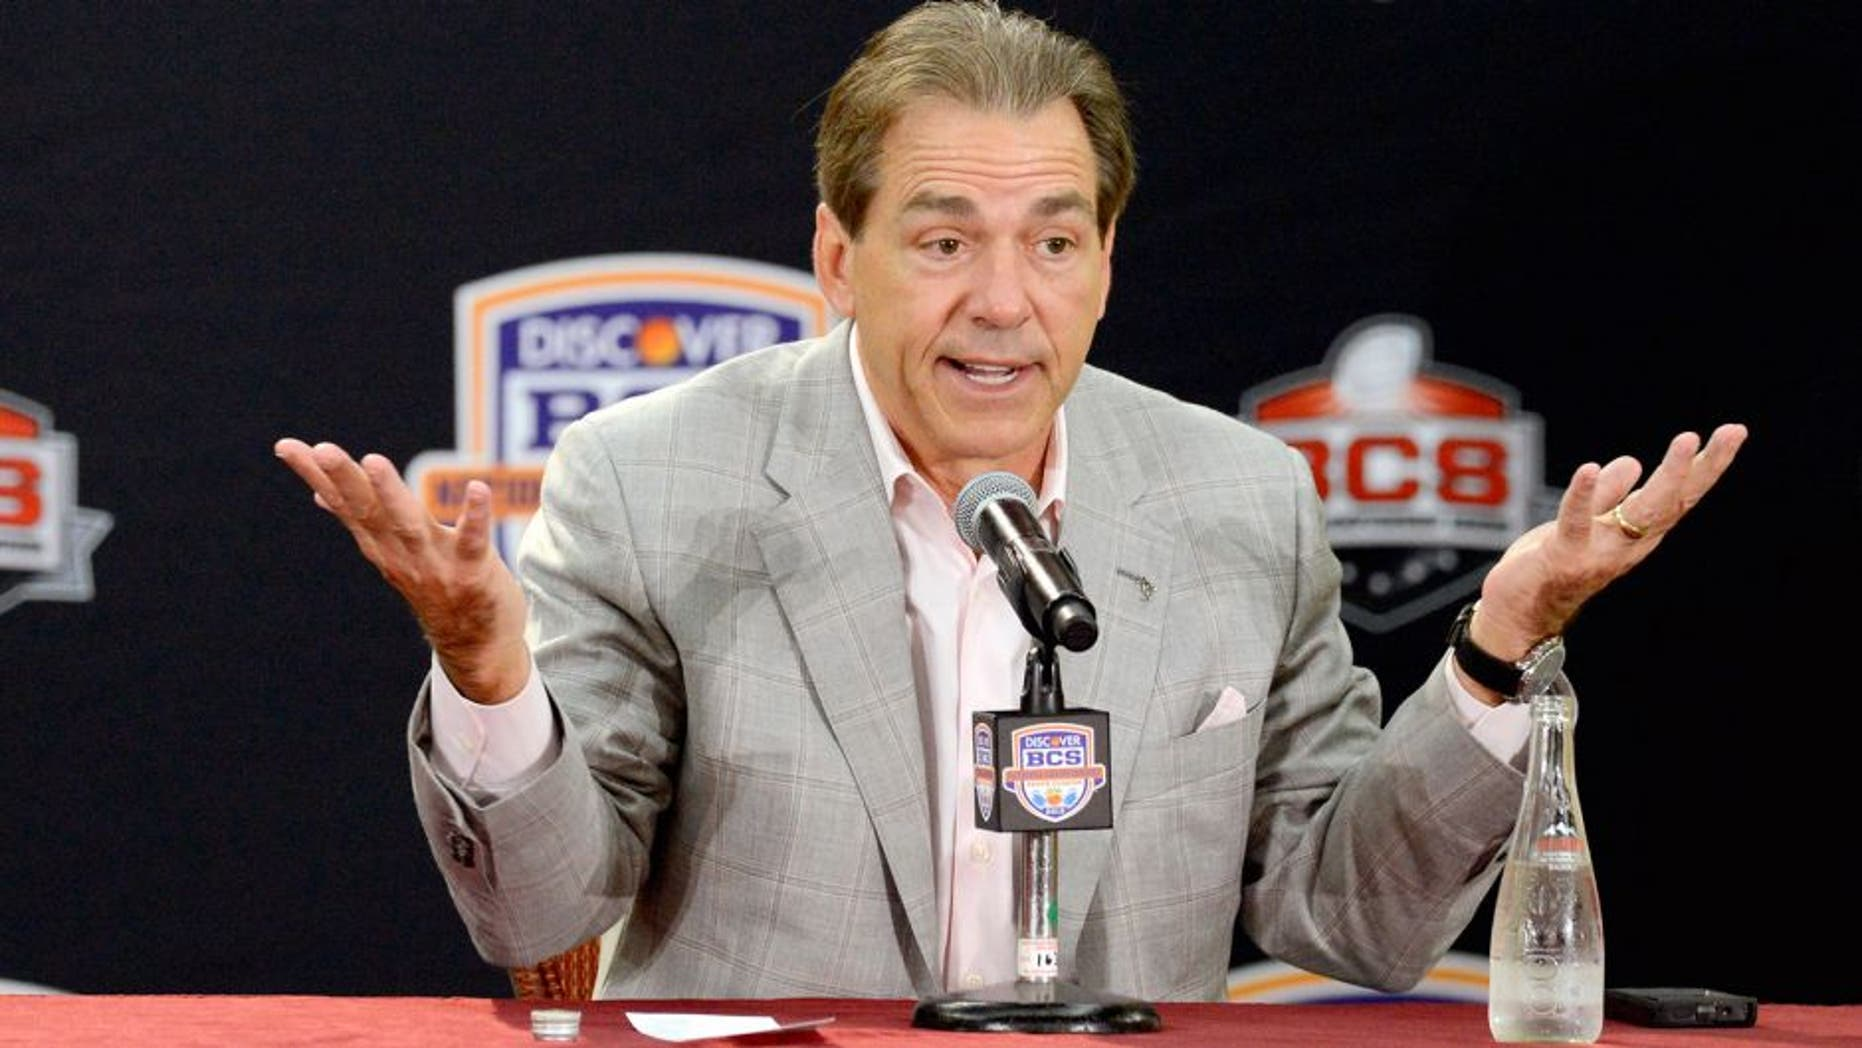 Jan 8, 2013; Fort Lauderdale FL, USA; Alabama Crimson Tide head coach Nick Saban addresses the media during the winning coach press conference at Harbor Beach Marriott Resort & Spa following Alabama's 42-14 win over Notre Dame last night in the 2013 BCS National Championship game. Mandatory Credit: John David Mercer-USA TODAY Sports